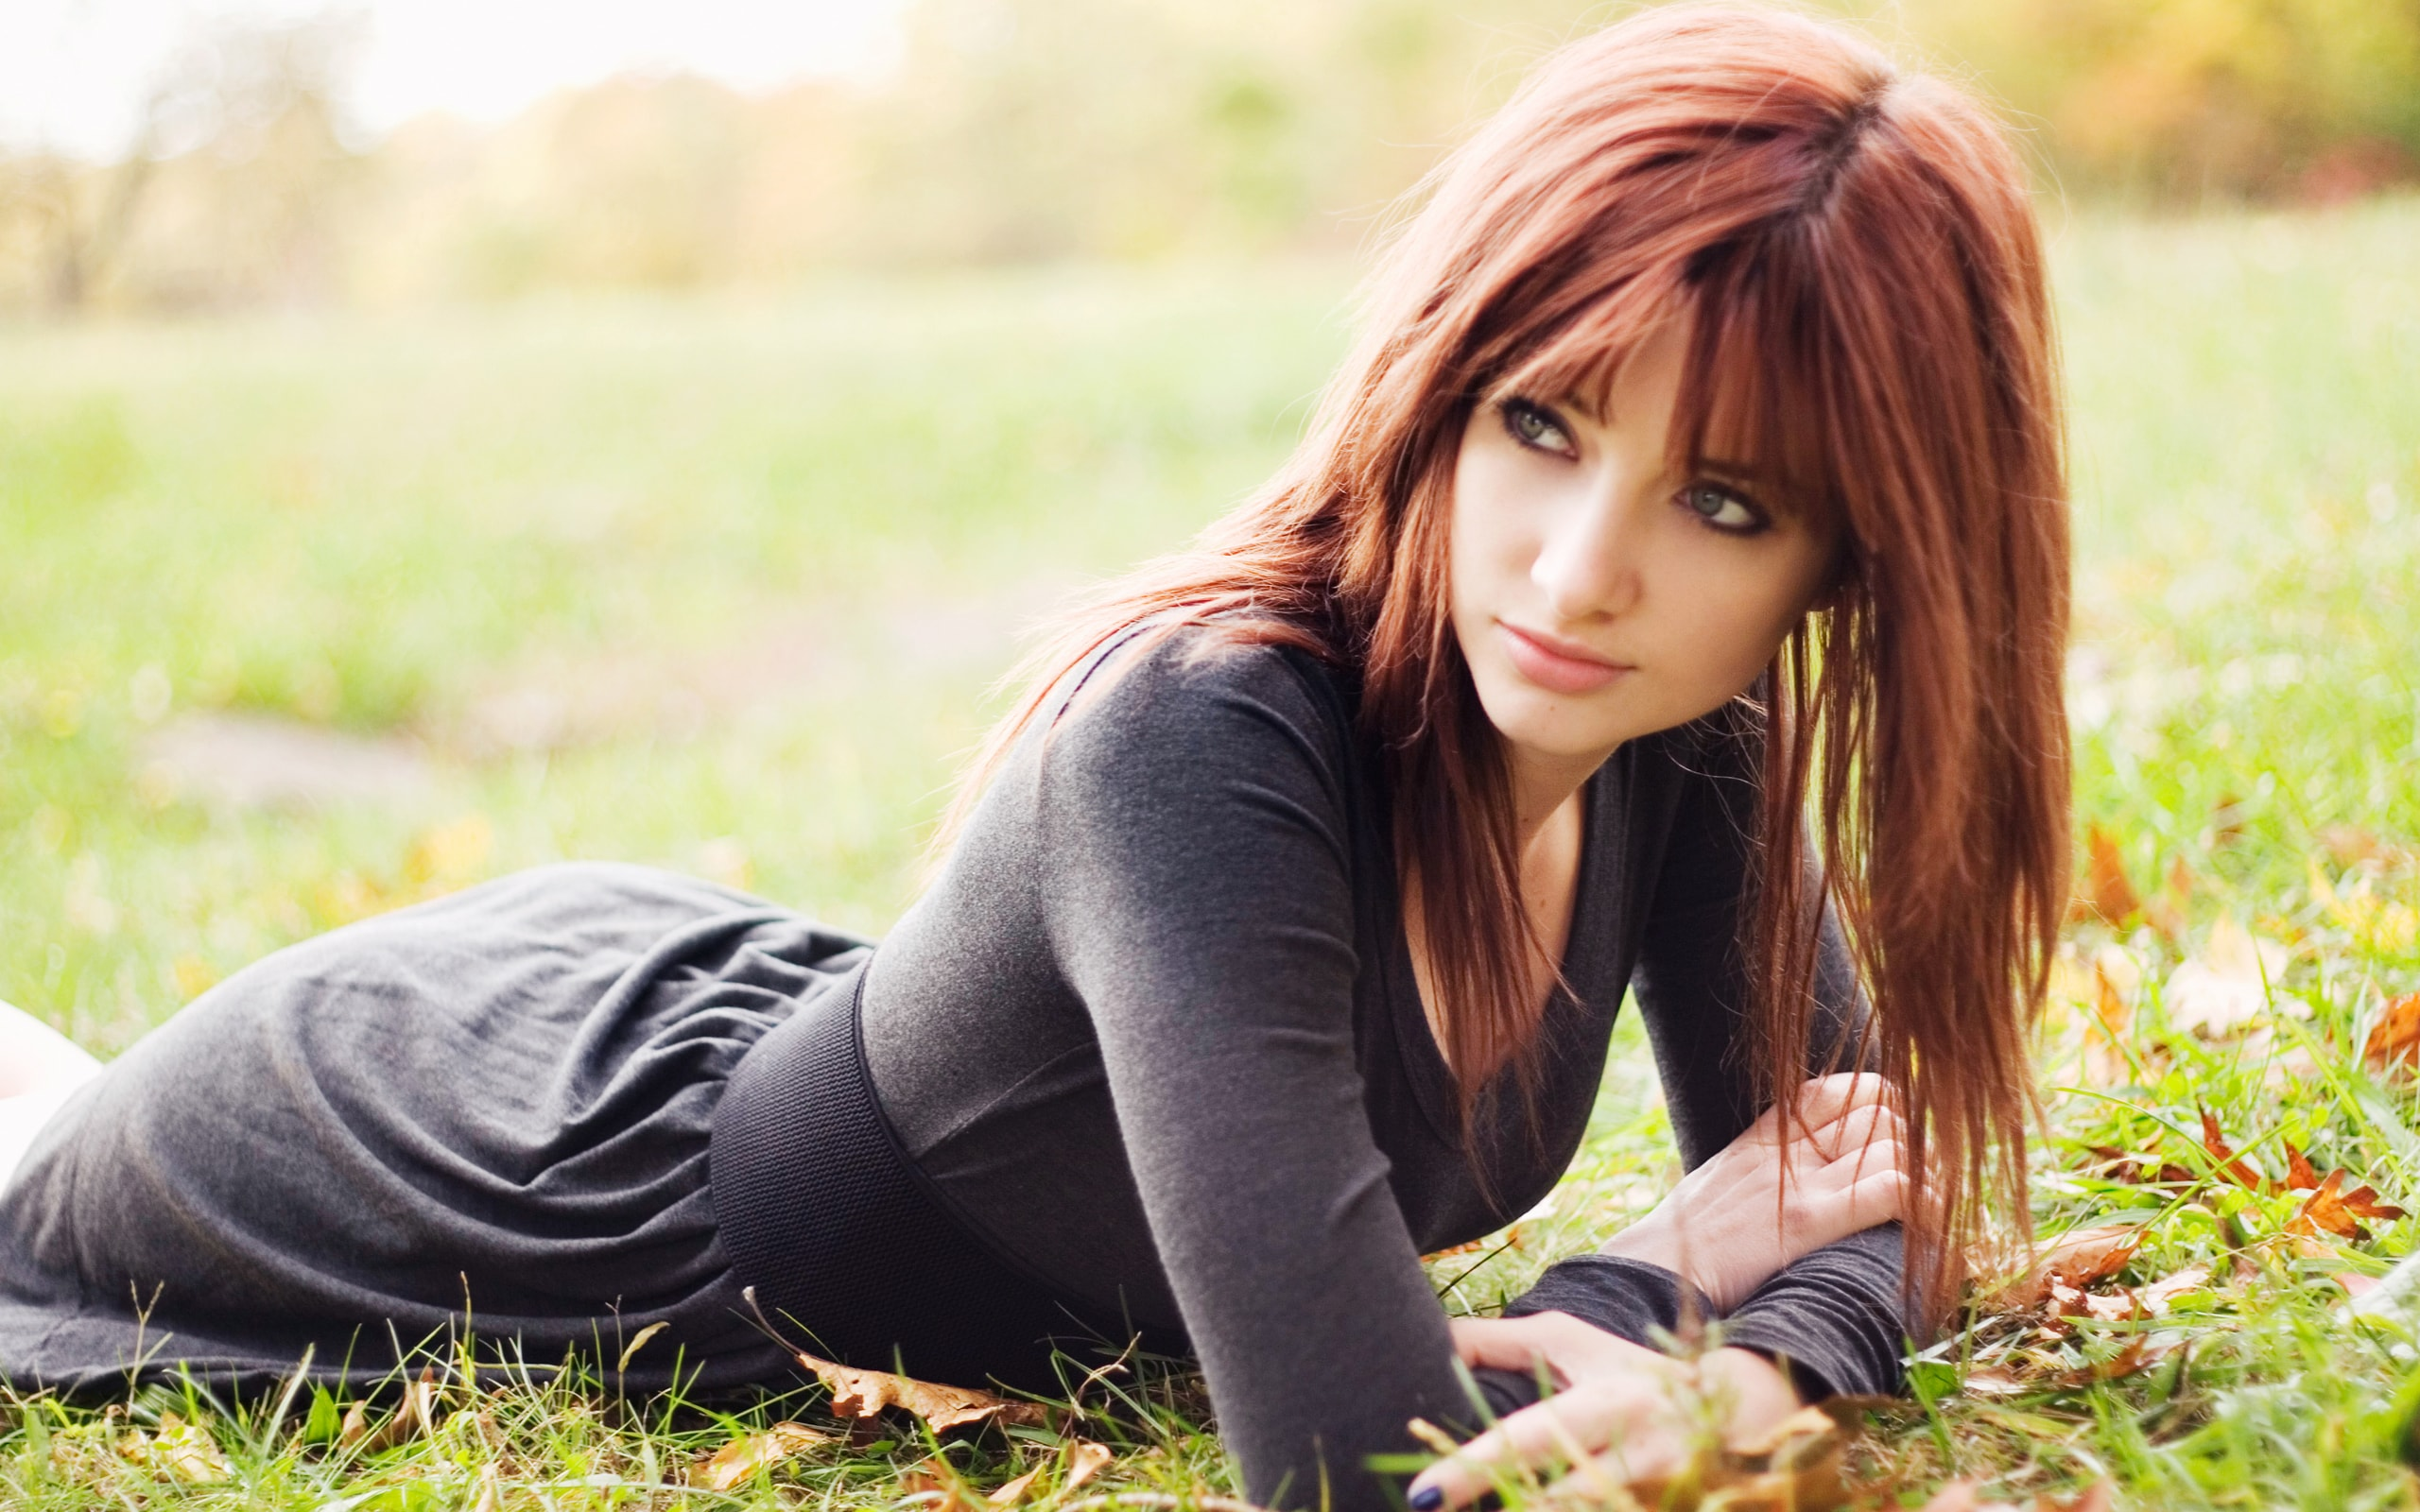 Susan Coffey Wallpapers hd